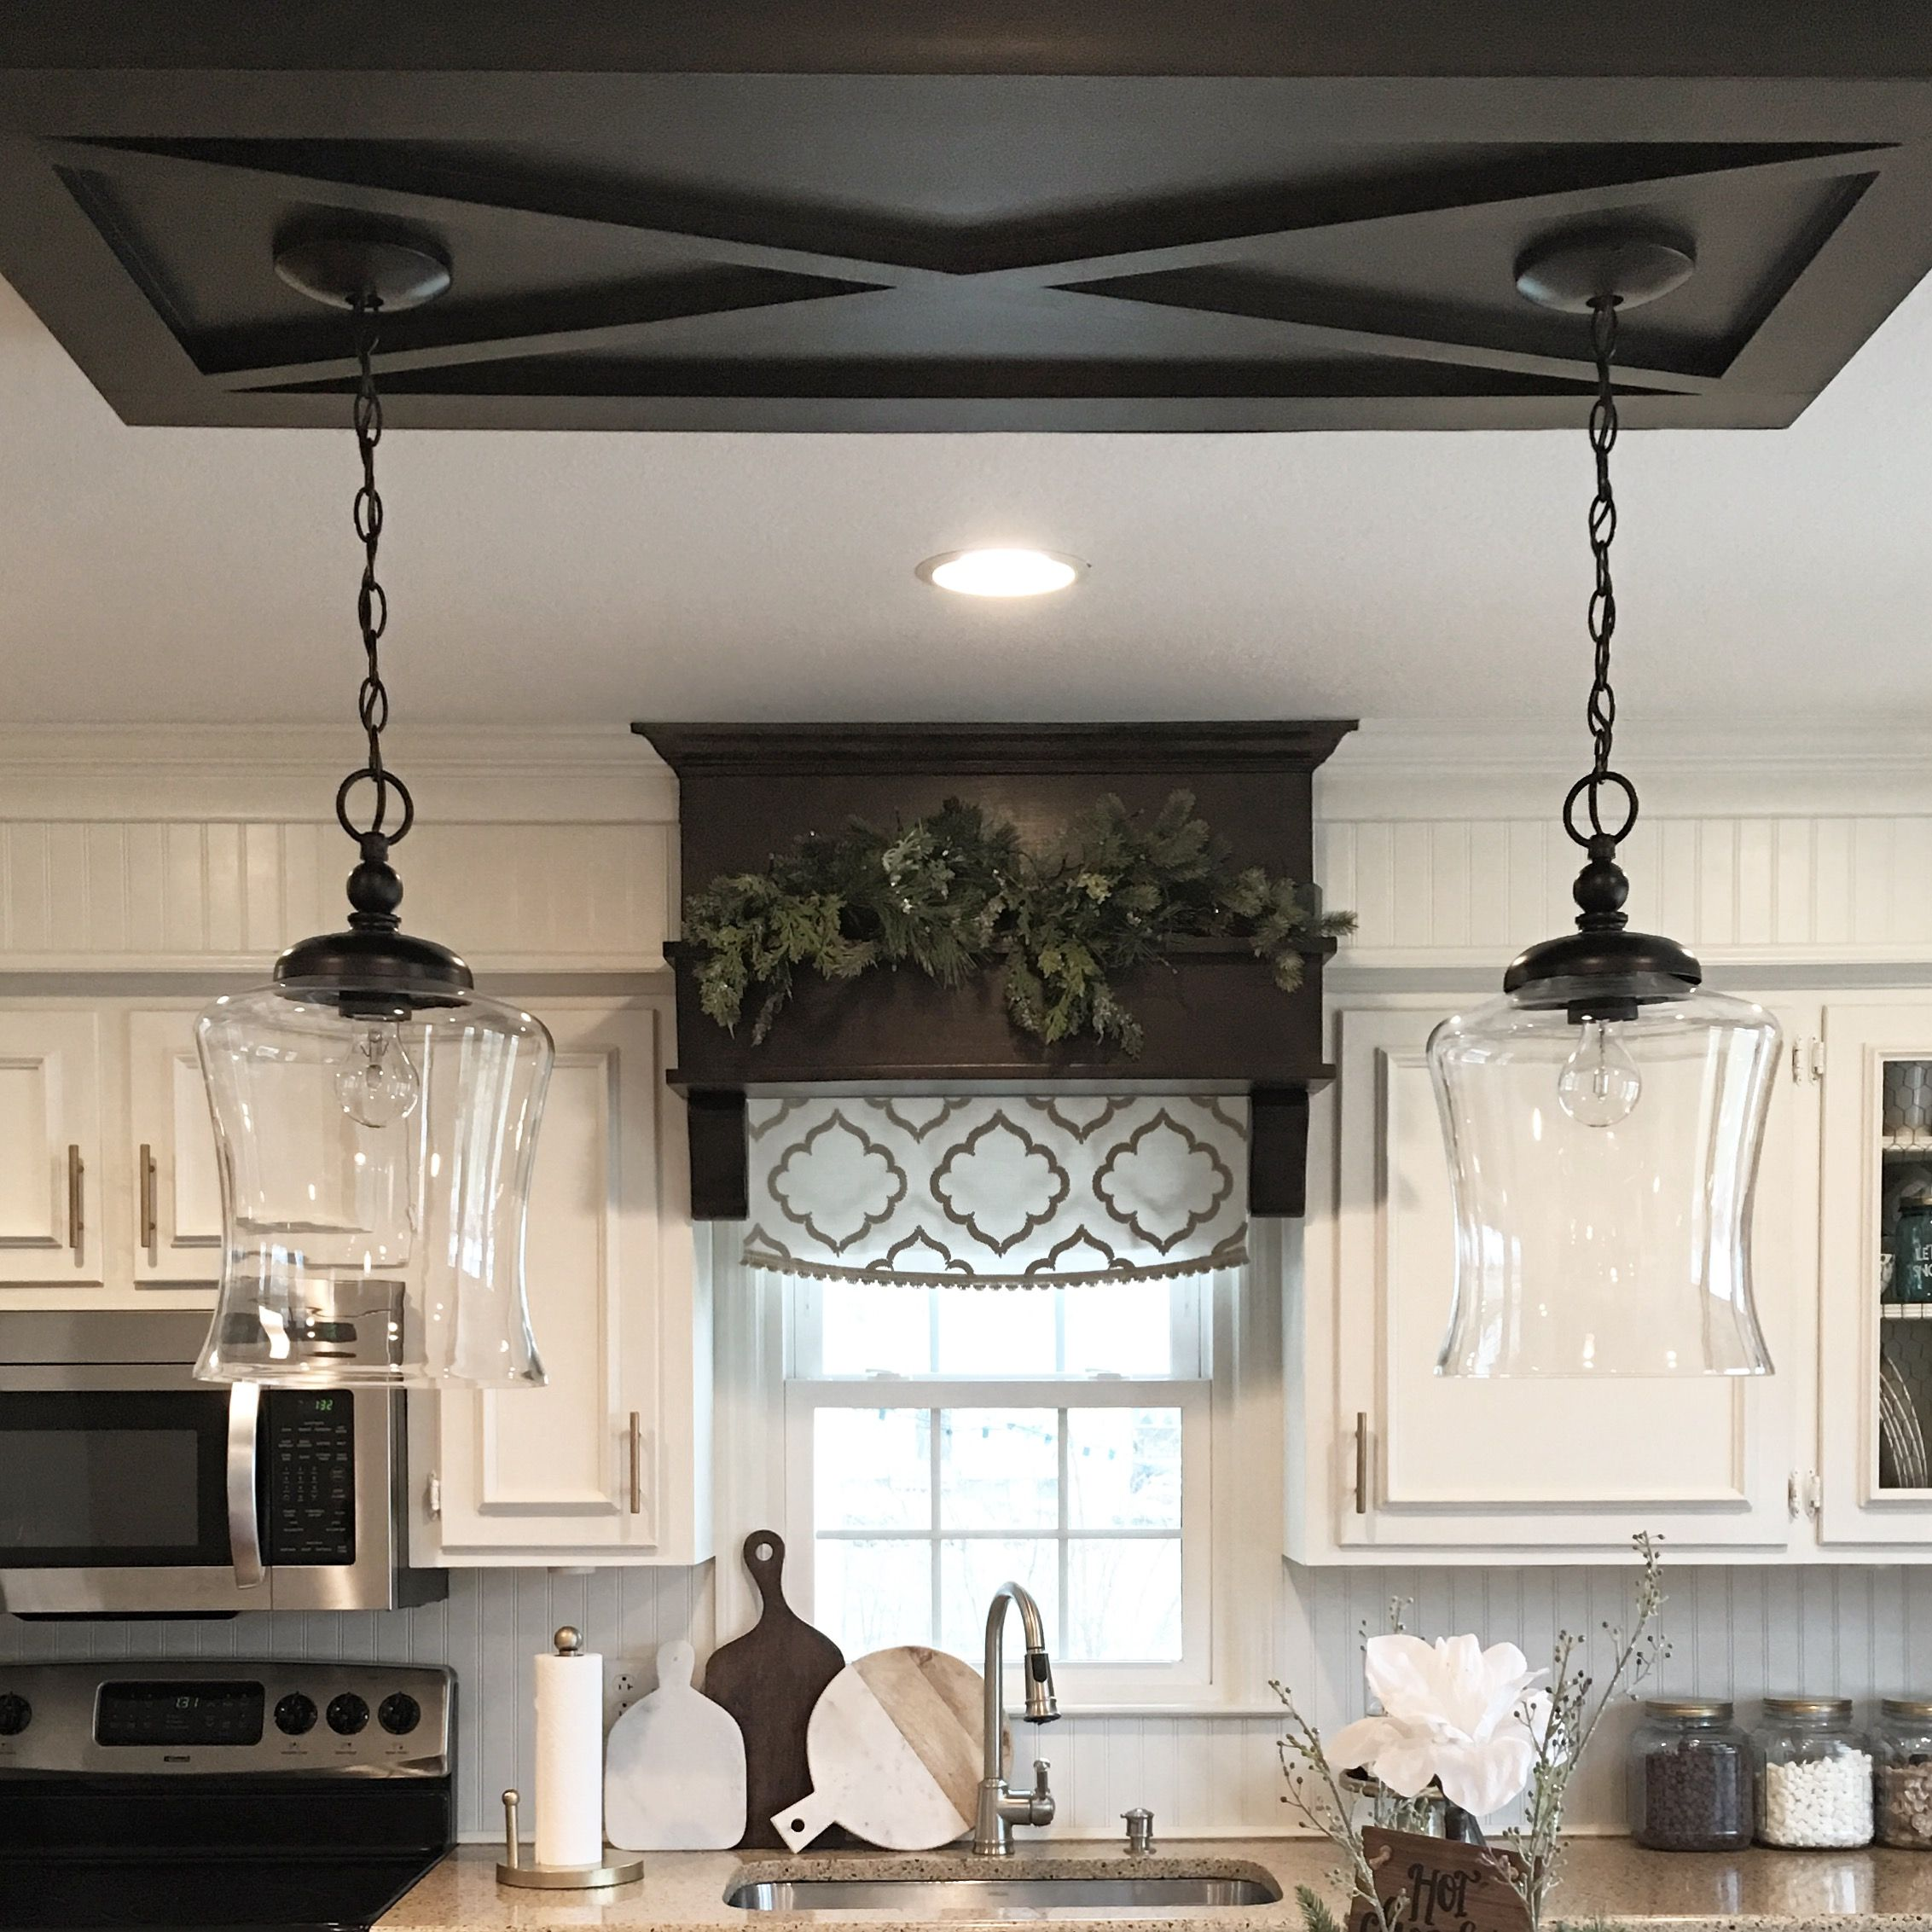 Modern Farmhouse Kitchen Island Lighting Love Our Custom Ceiling Trim That The Pendants Hang From Ceiling Trim Dinning Room Lighting House Trim